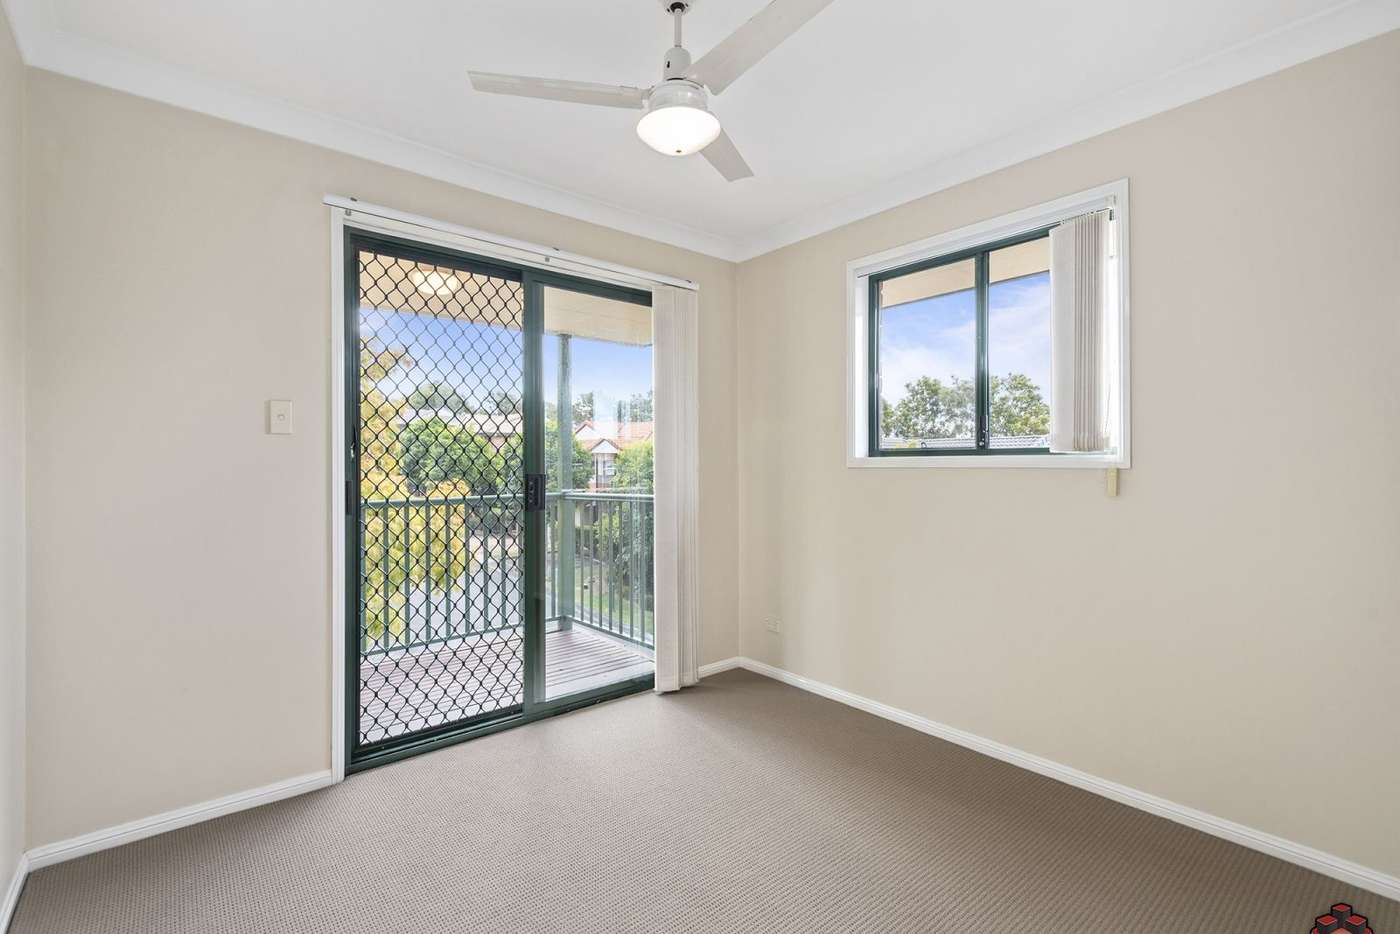 Sixth view of Homely townhouse listing, 90 Oakleaf Street, Eight Mile Plains QLD 4113